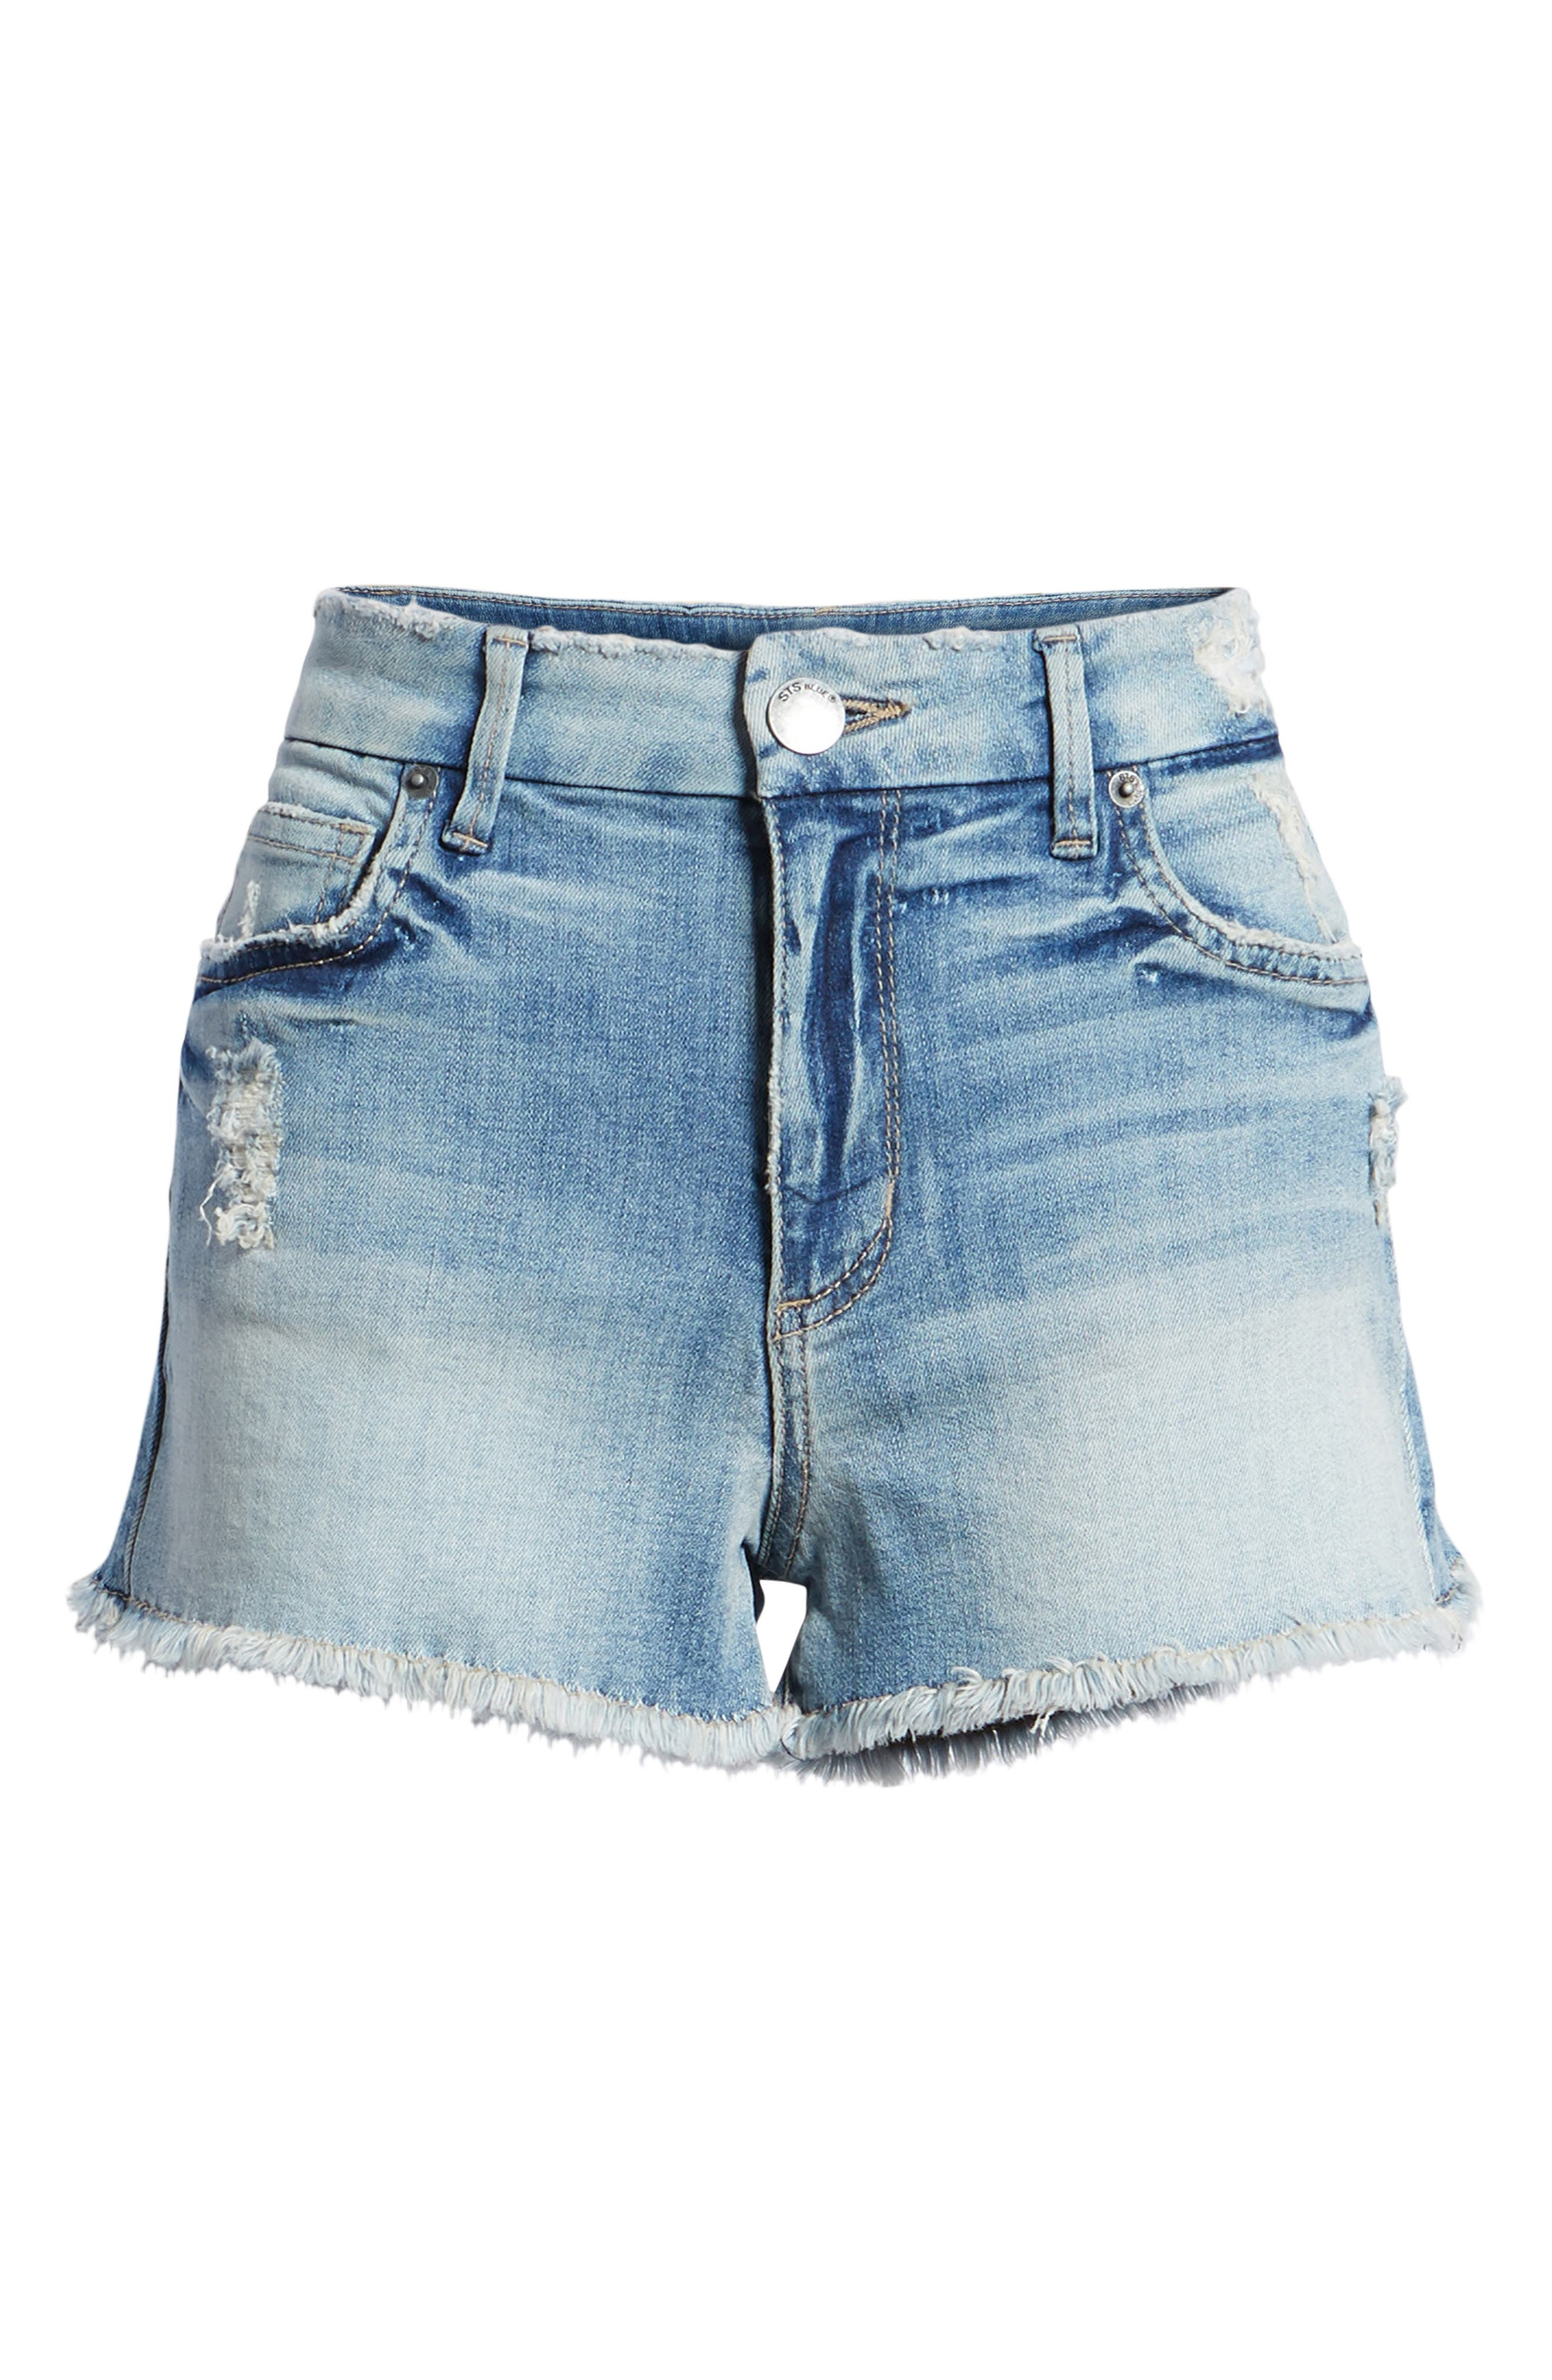 High Waist Boyfriend Shorts,                             Alternate thumbnail 7, color,                             Sundance